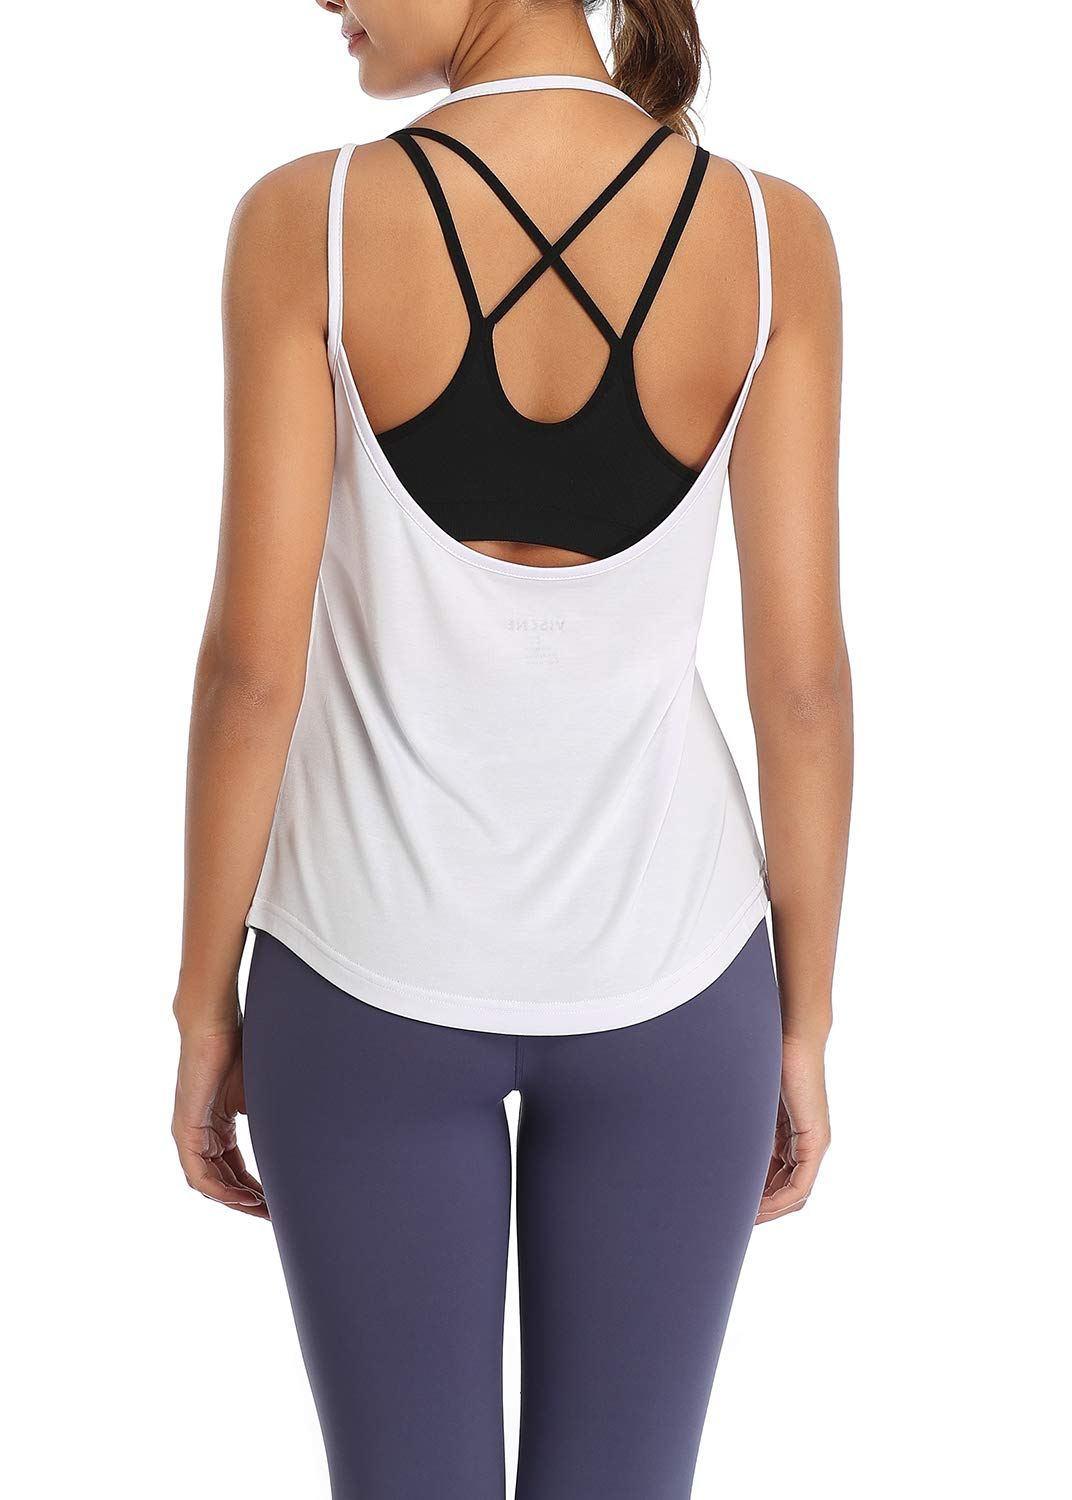 VISCNE Workout Tops Women's Open Back T- Shirts Activewear Yoga Gym Clothes Sports Tank Tops